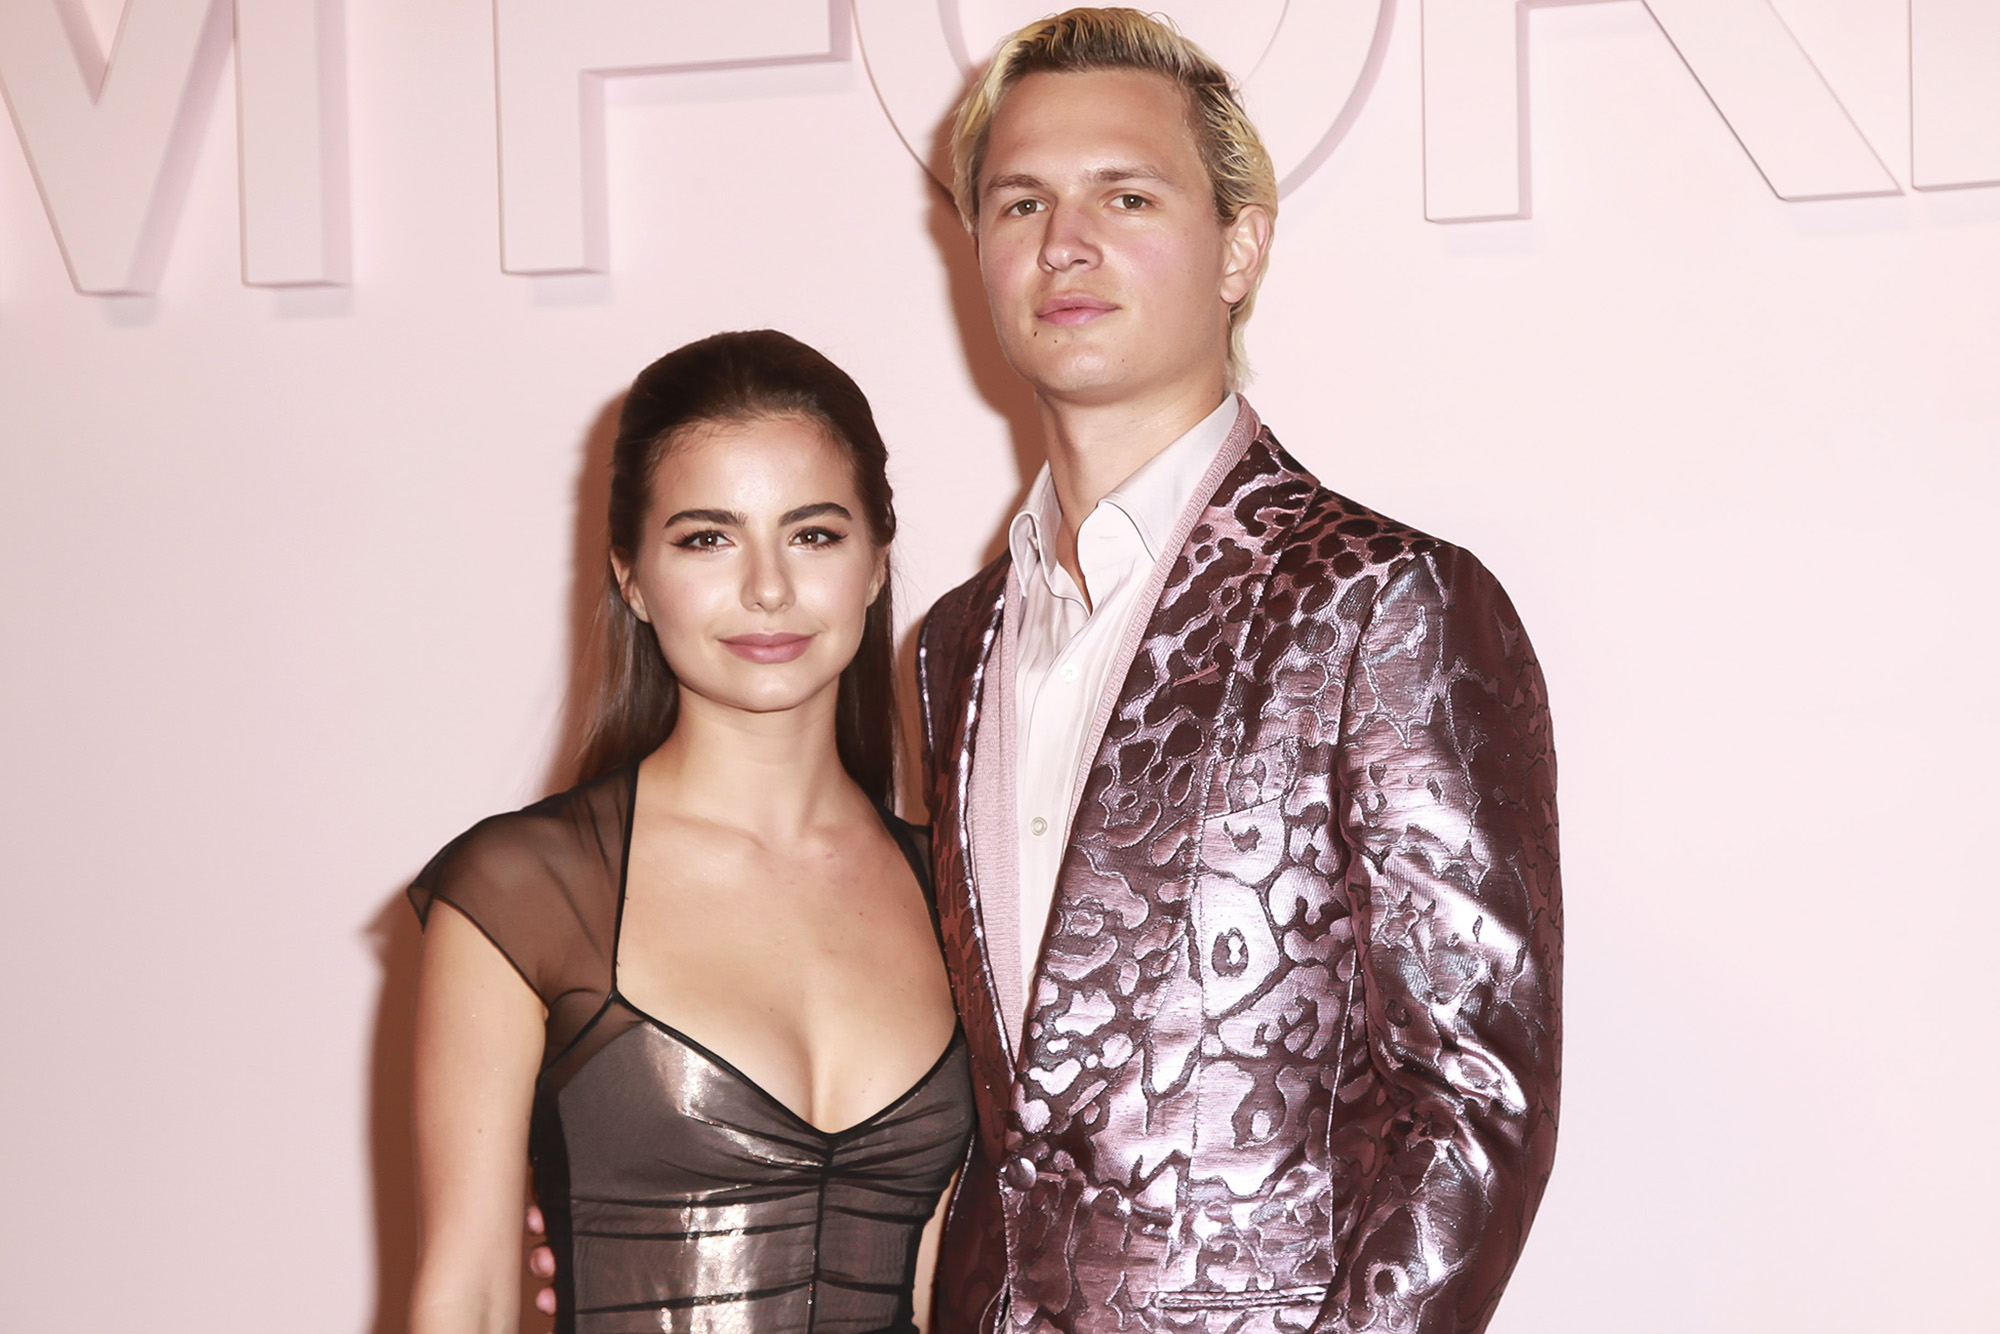 Ansel Elgort And Girlfriend Violetta Komyshan Wow At Ballet Event